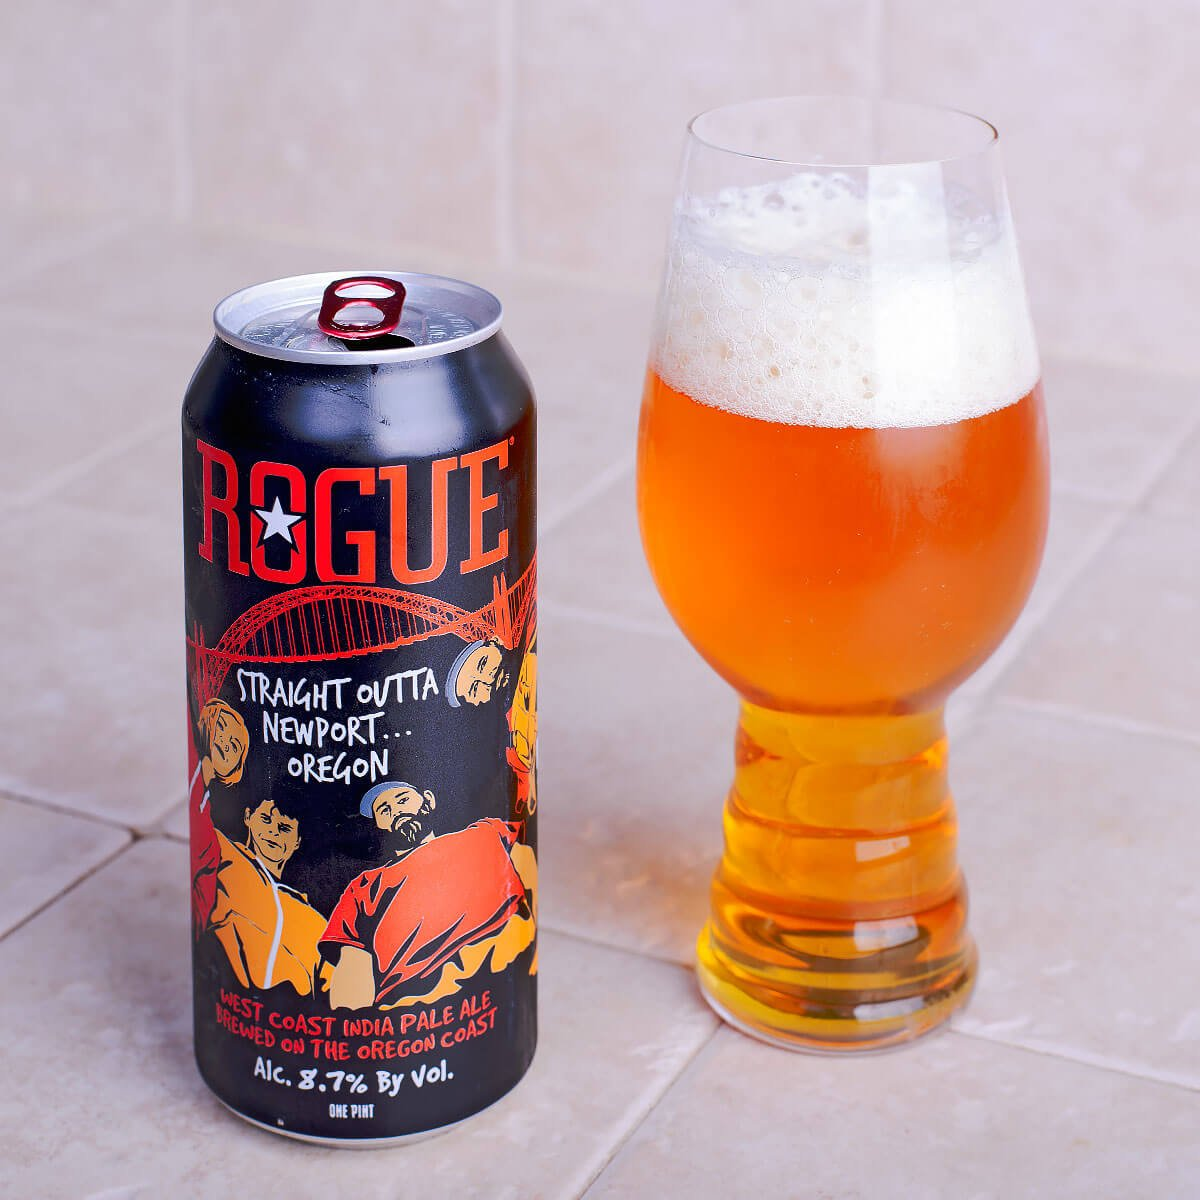 Straight Outta Newport Oregon, an American Double IPA by Rogue Ales